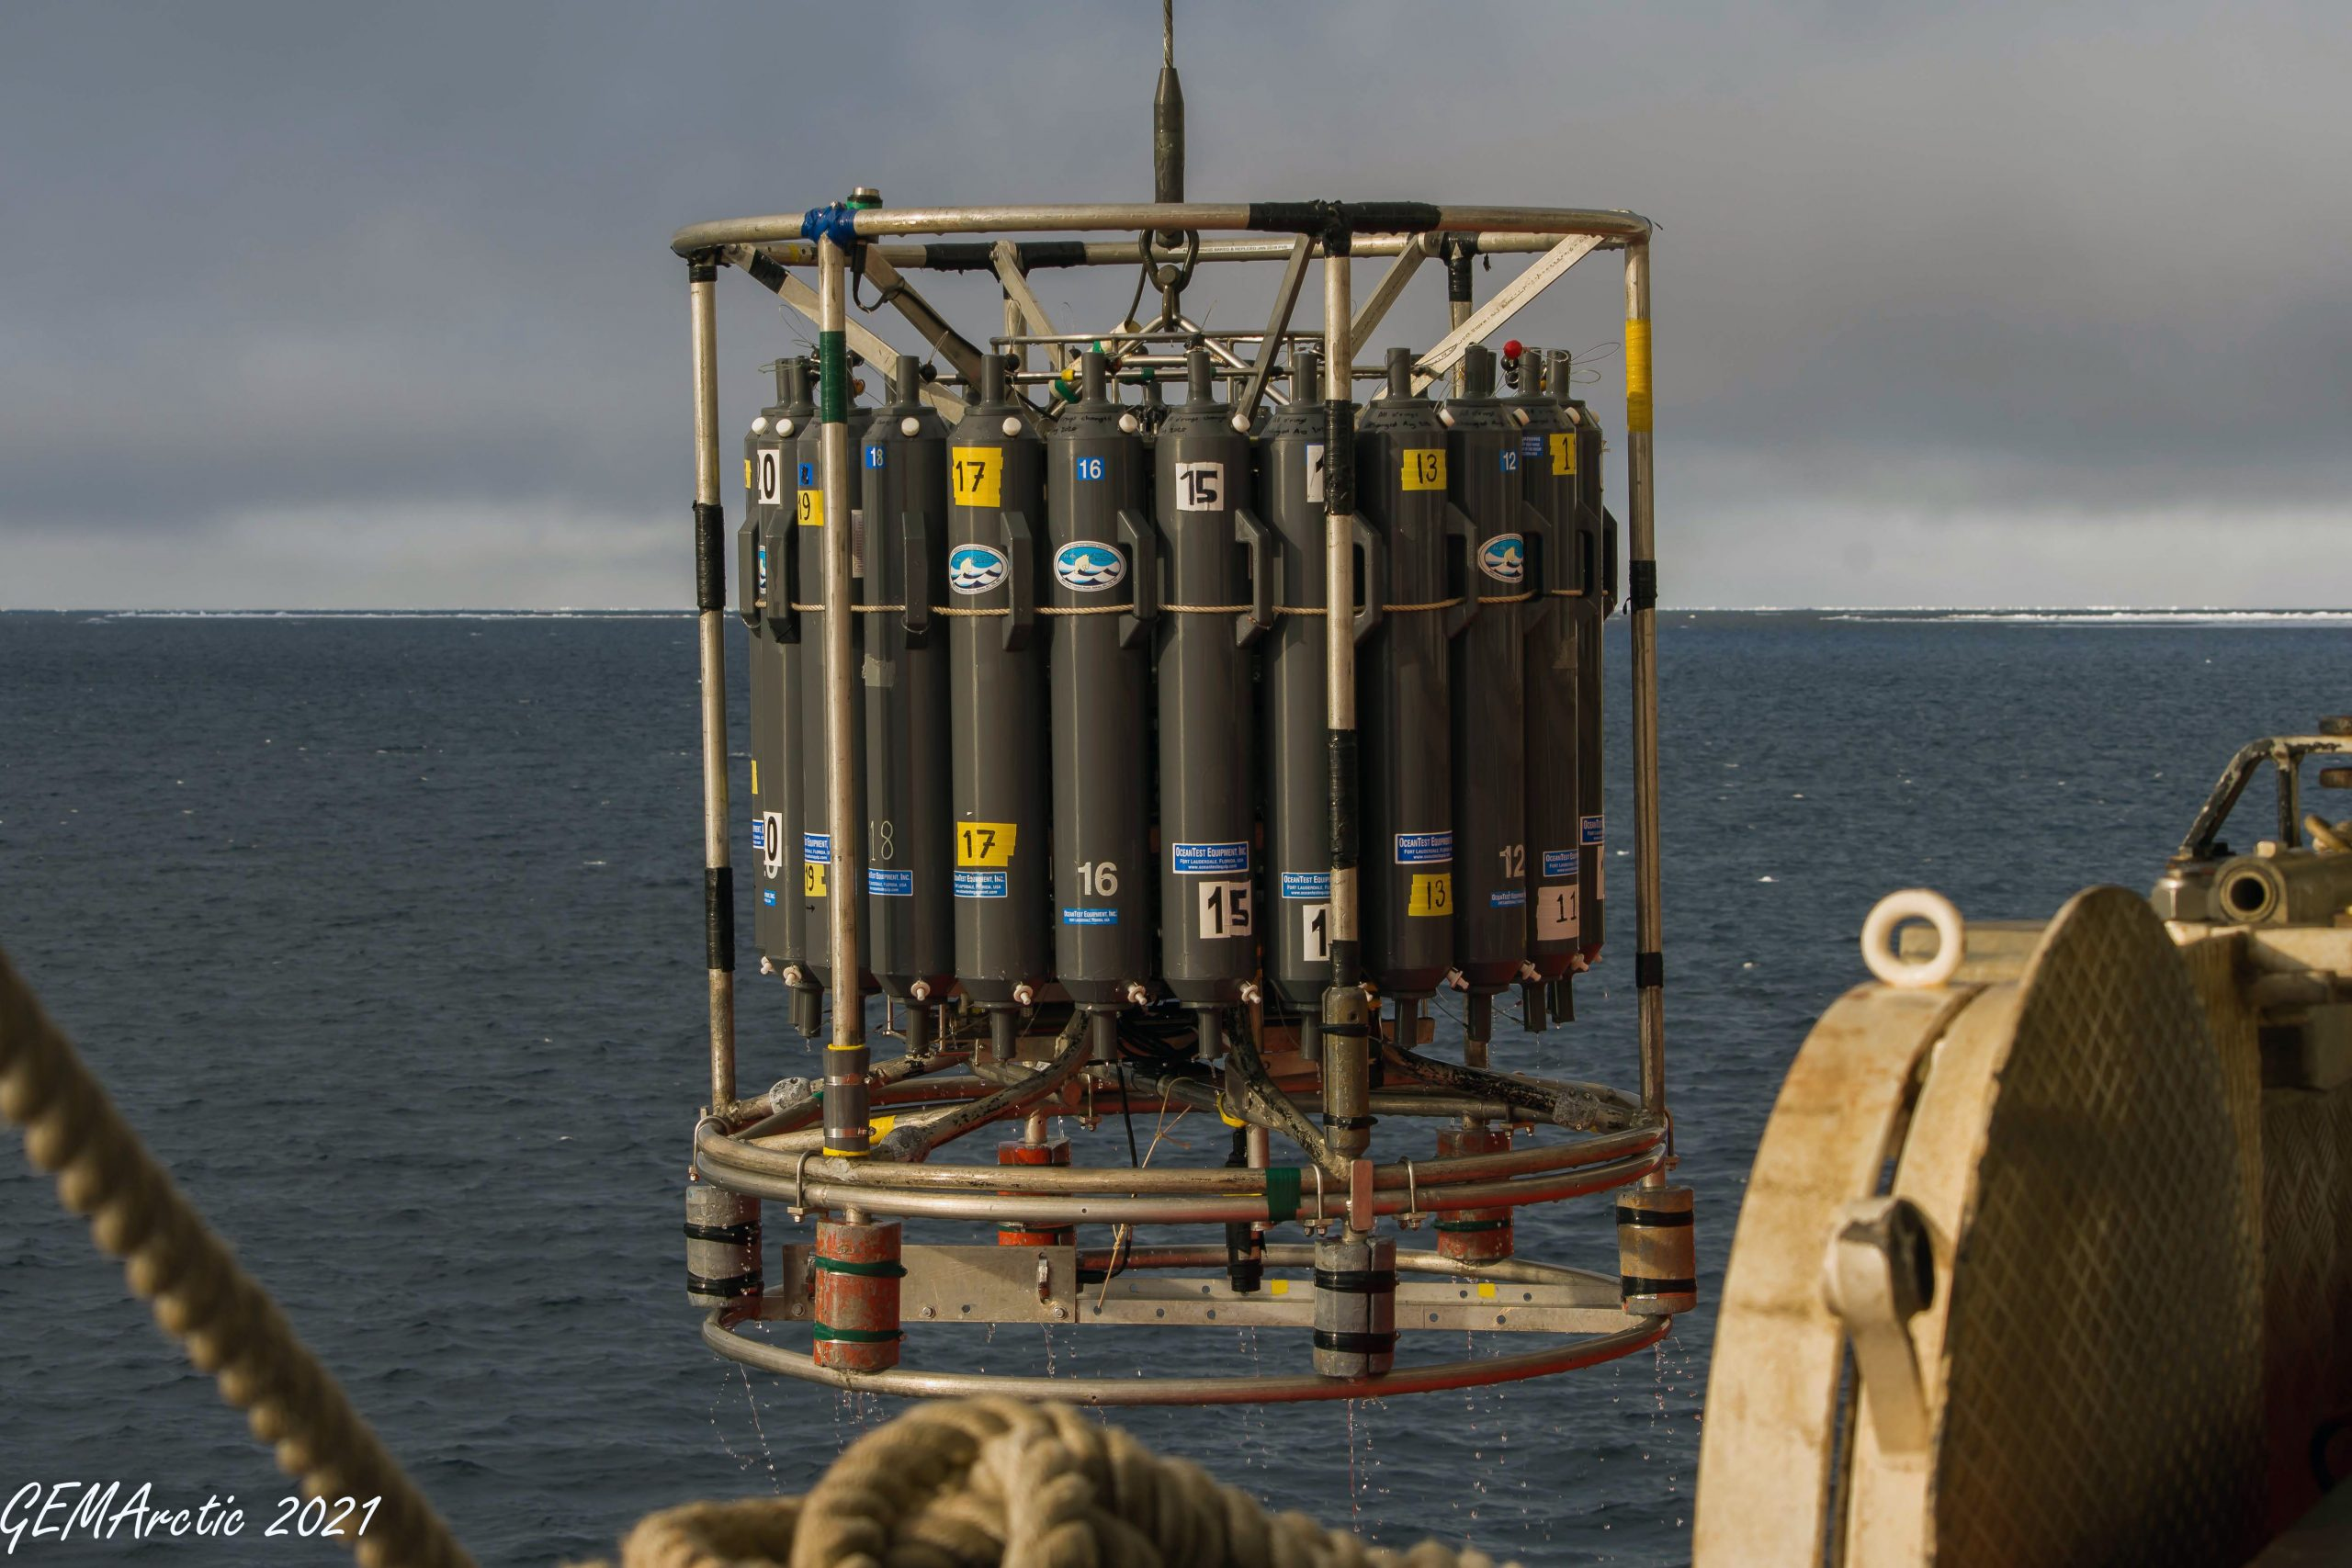 The CTD Rosette returns to the deck after a successful dive. (Photo: Gary Morgan)